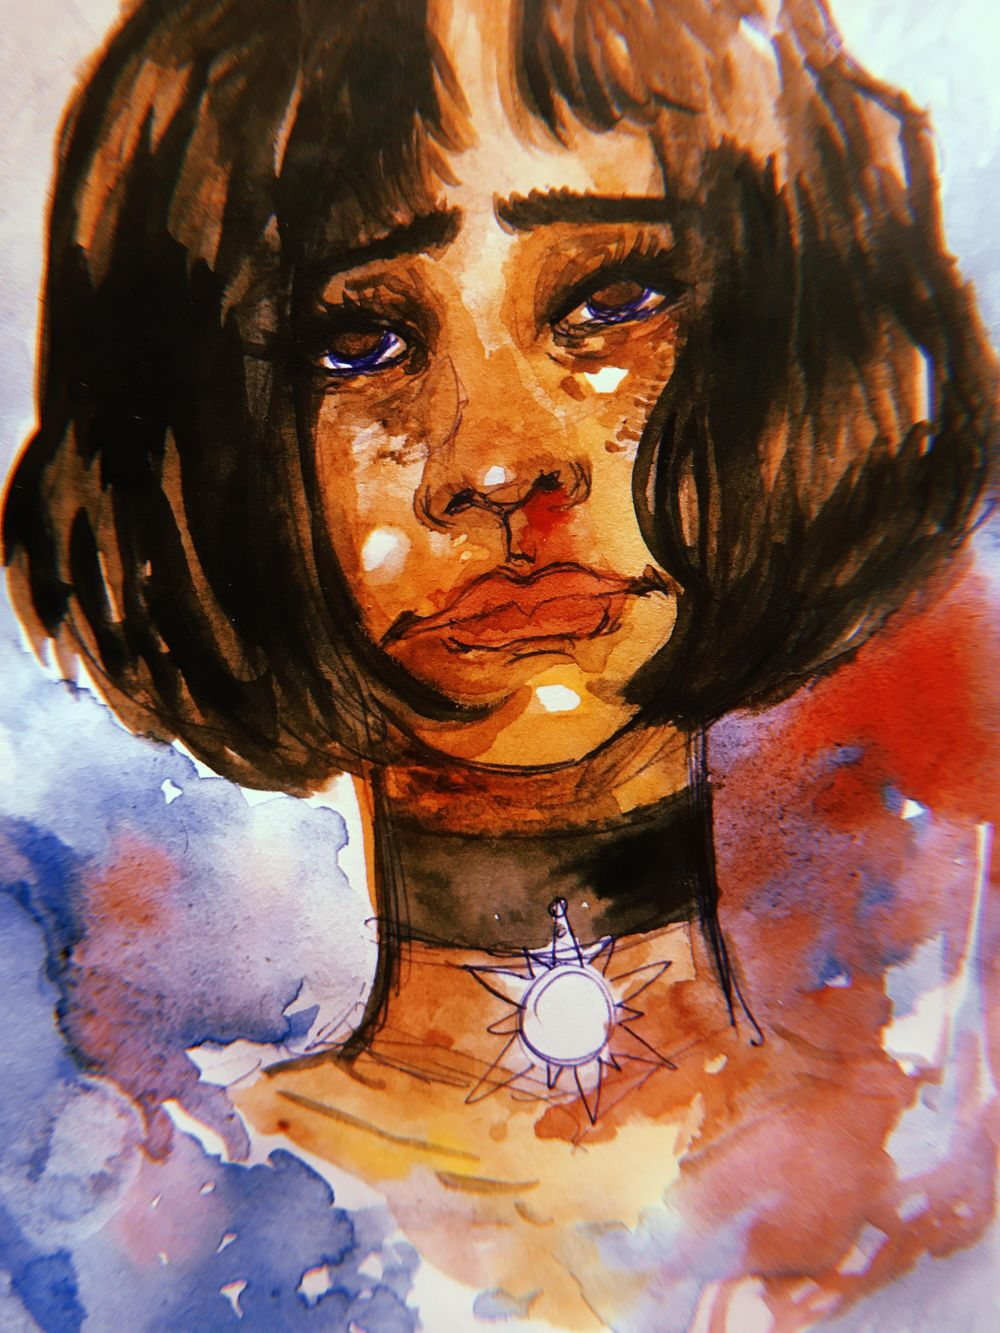 watercolor portraits - image 1 - student project